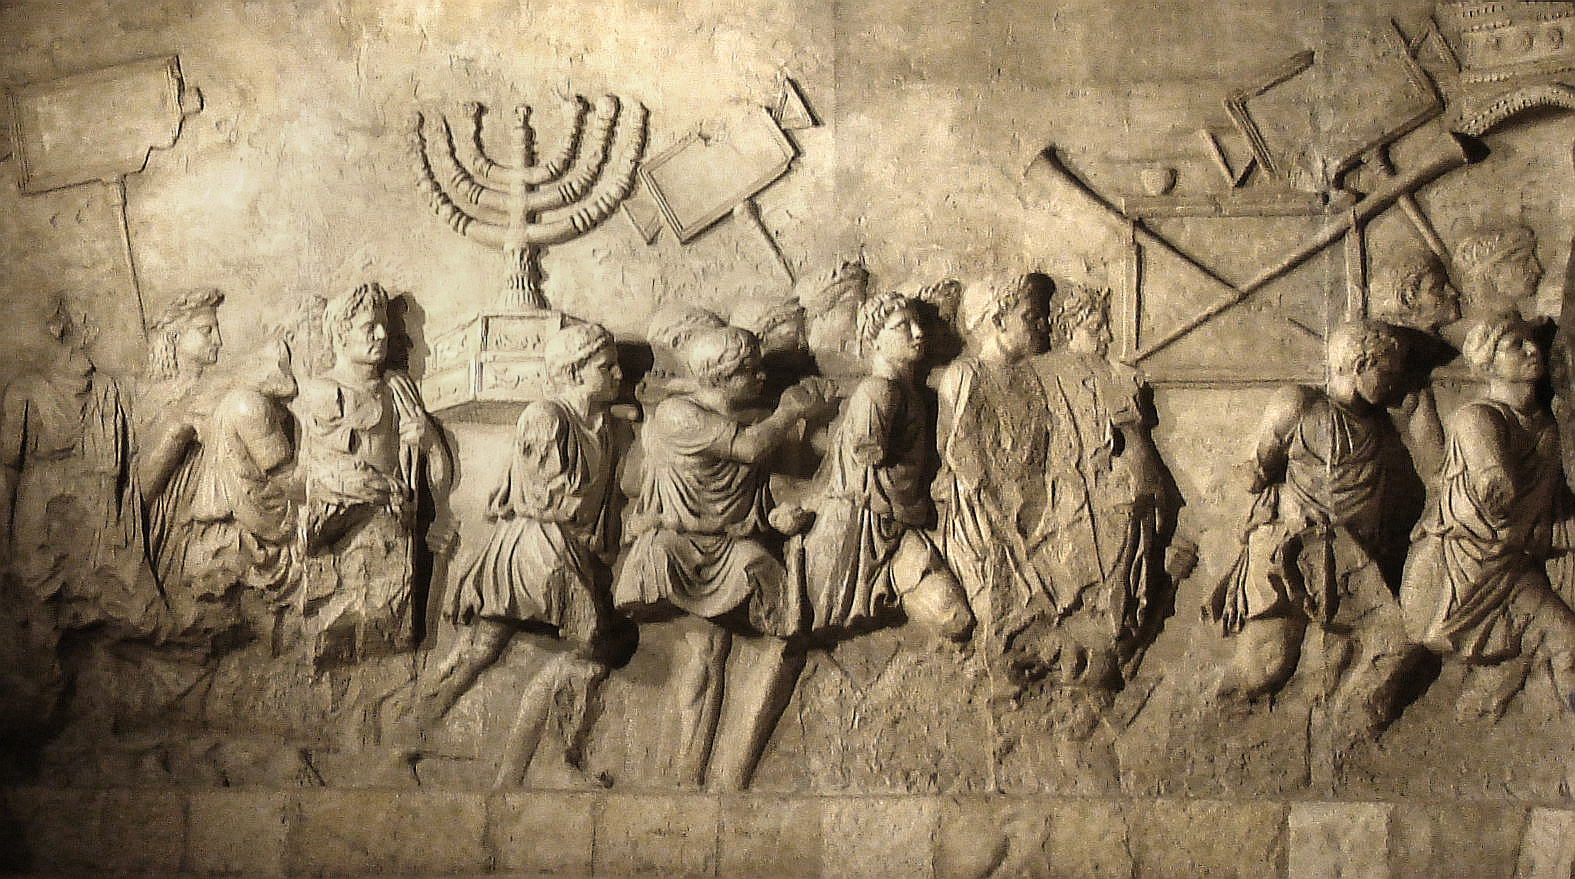 Arch_of_Titus_Menorah_22